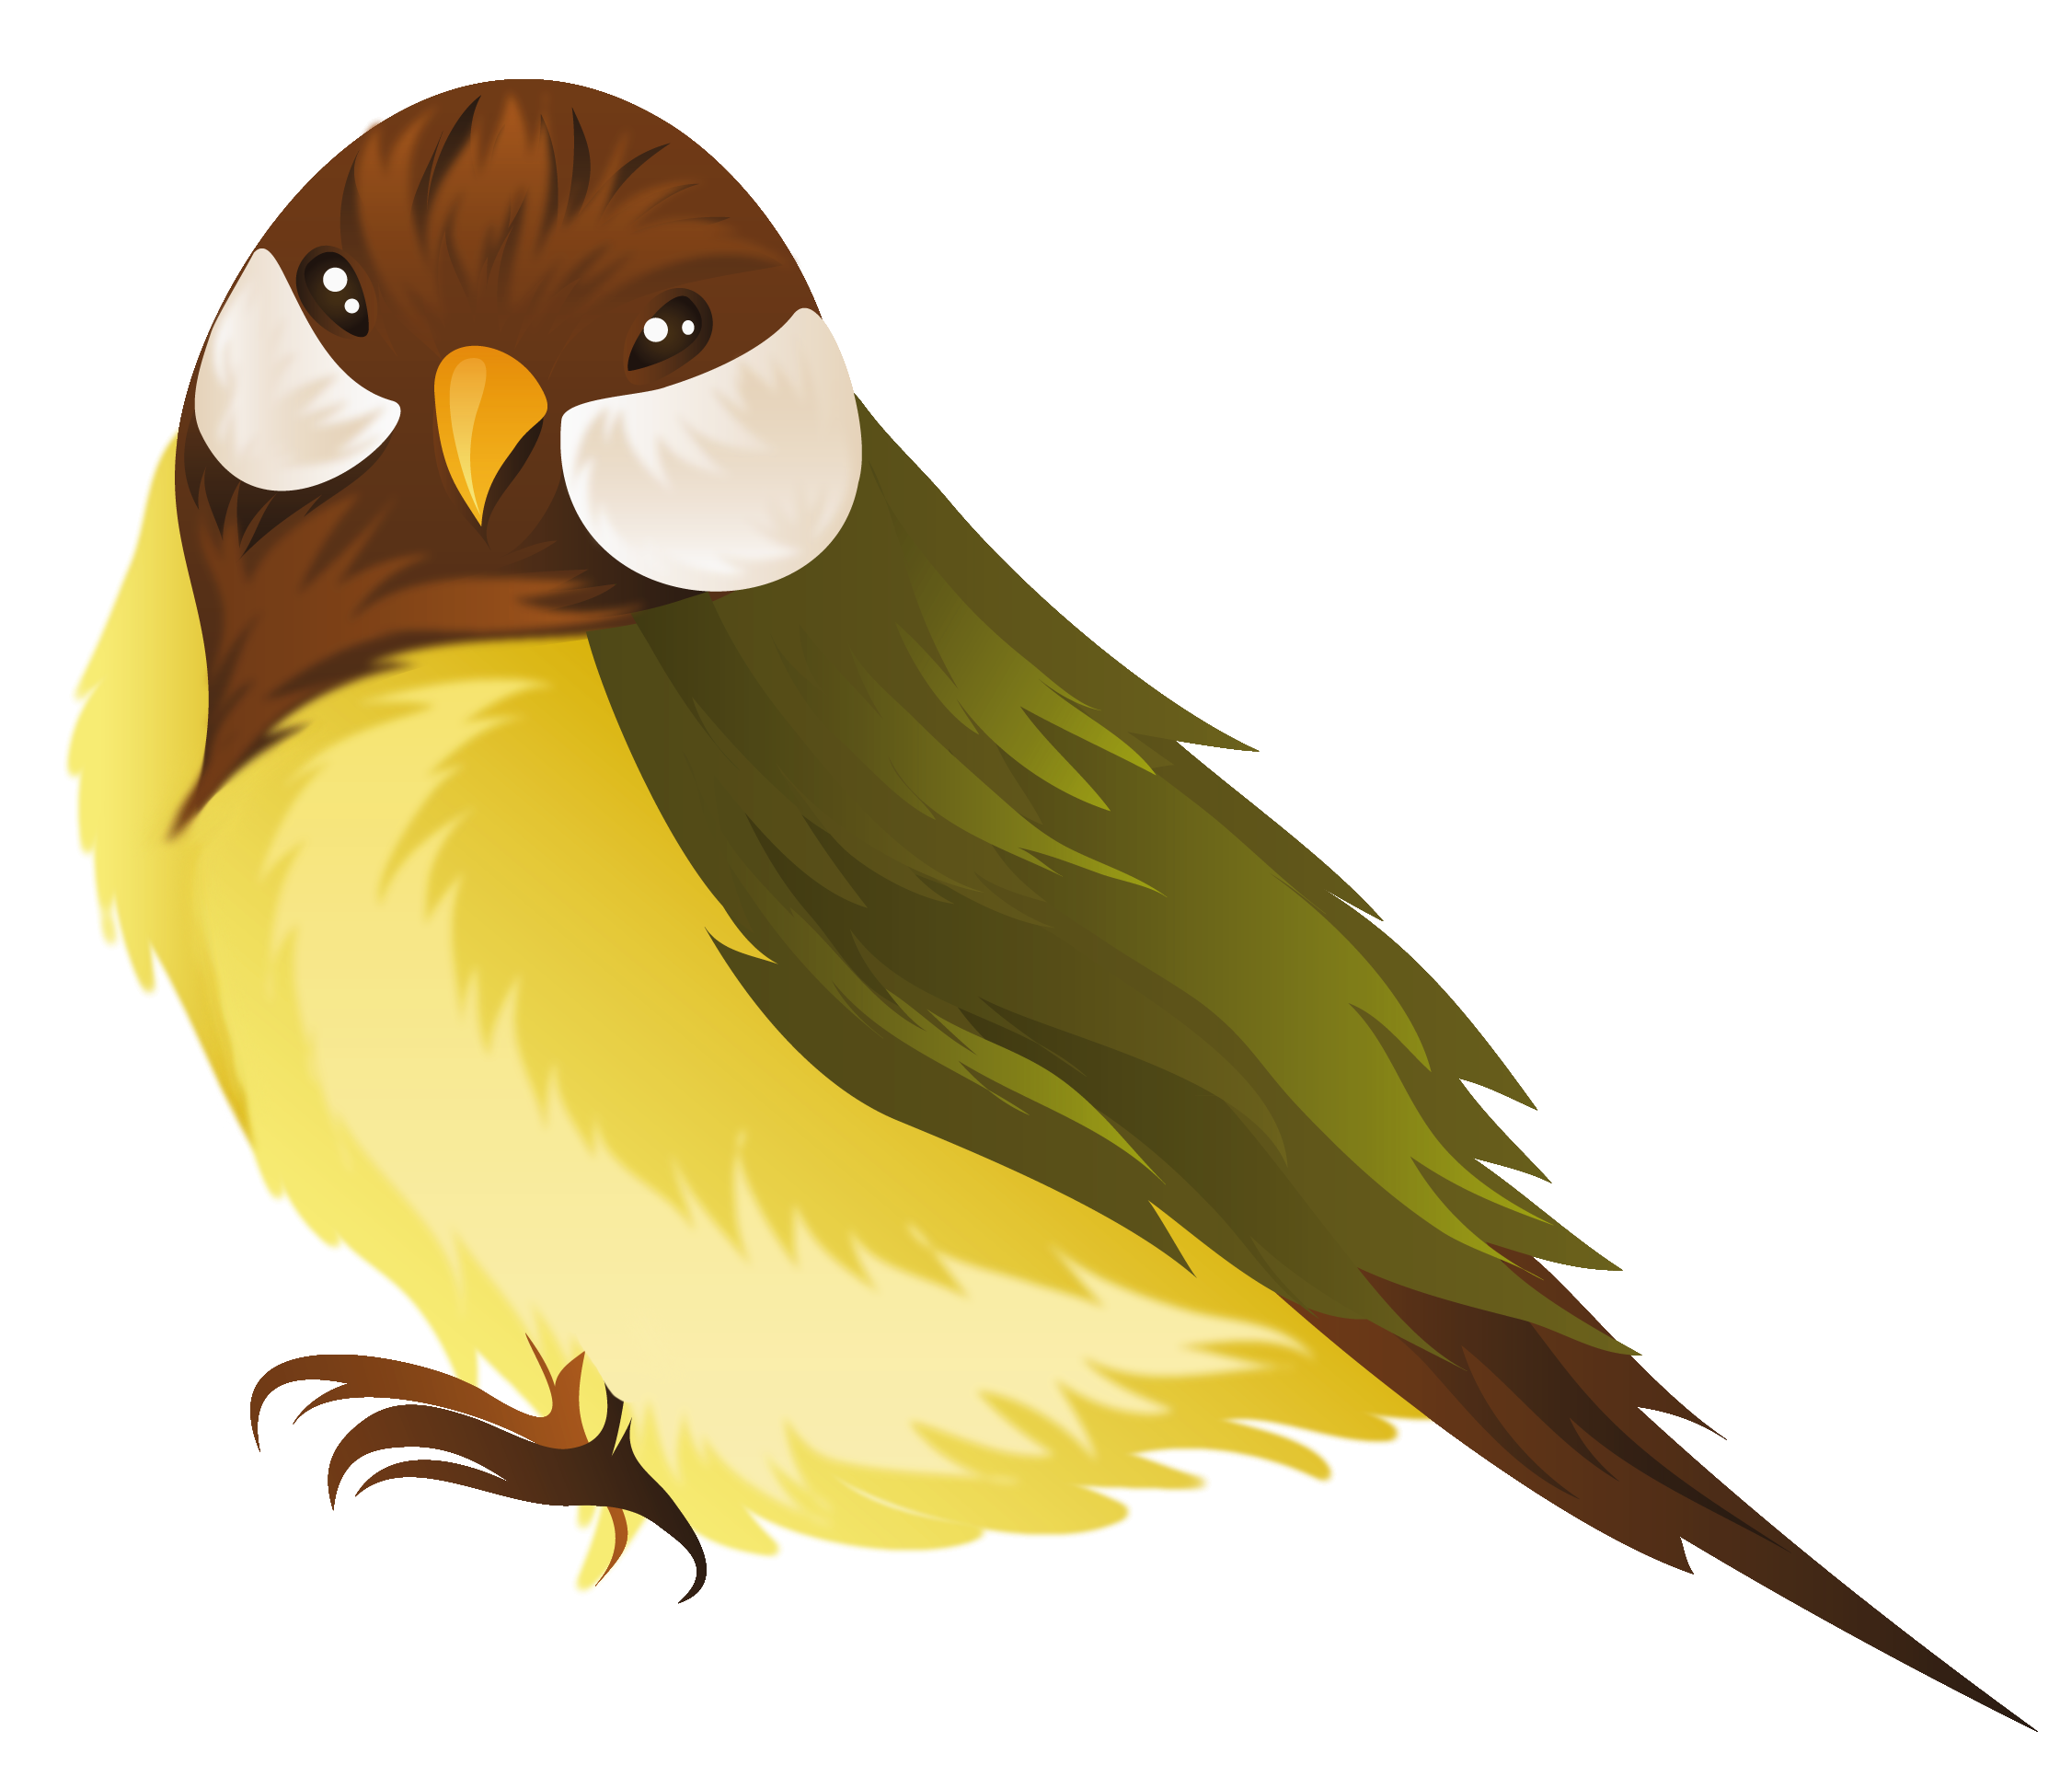 Image gallery yopriceville high. Bird clipart png svg royalty free stock